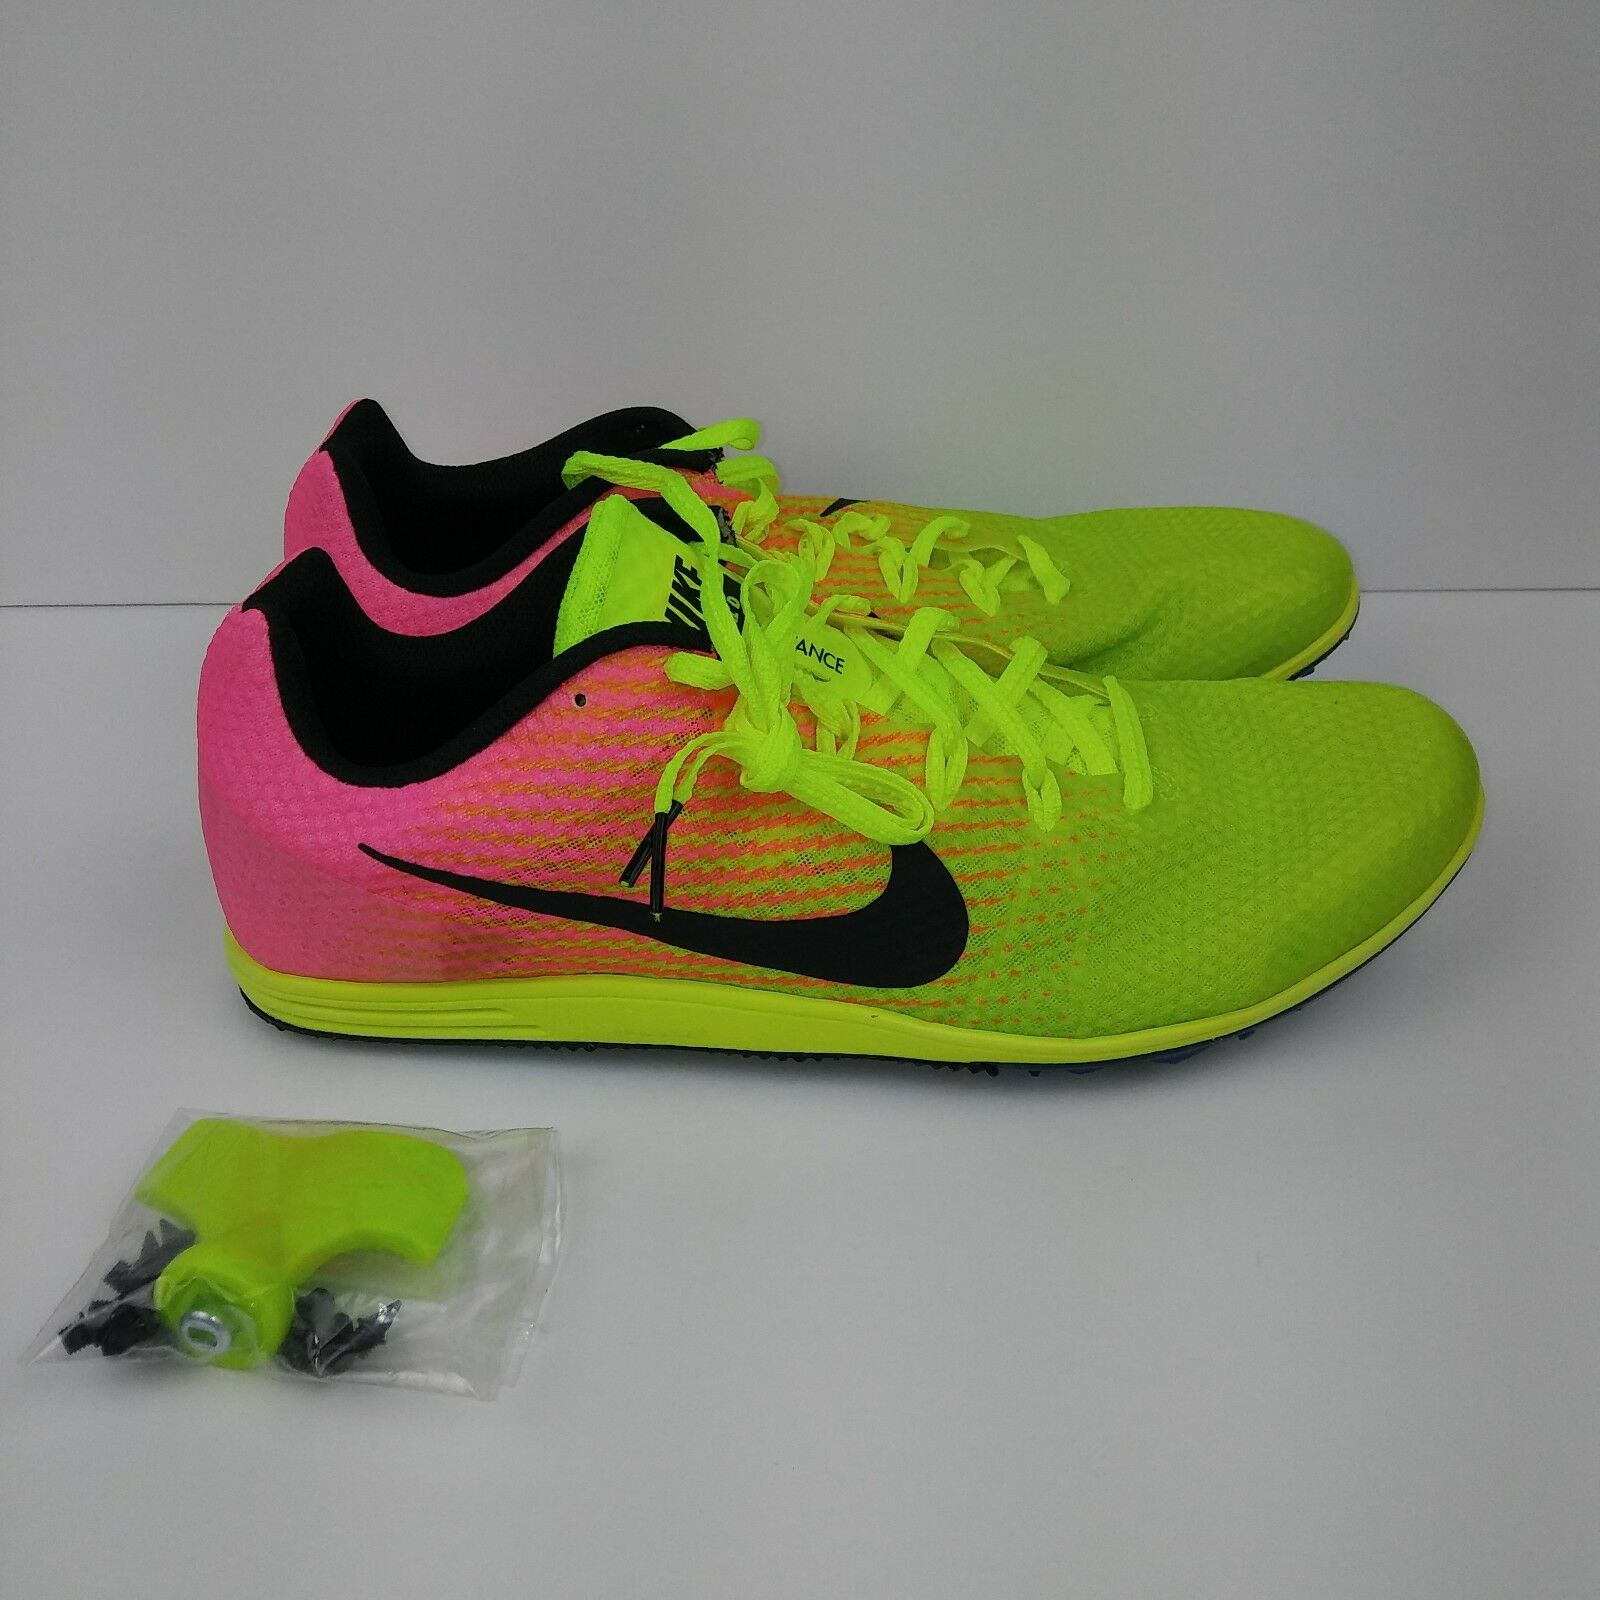 NIKE Zoom Rival D 9 Track Racing Running Spikes Shoes Volt Pink Men's Comfortable